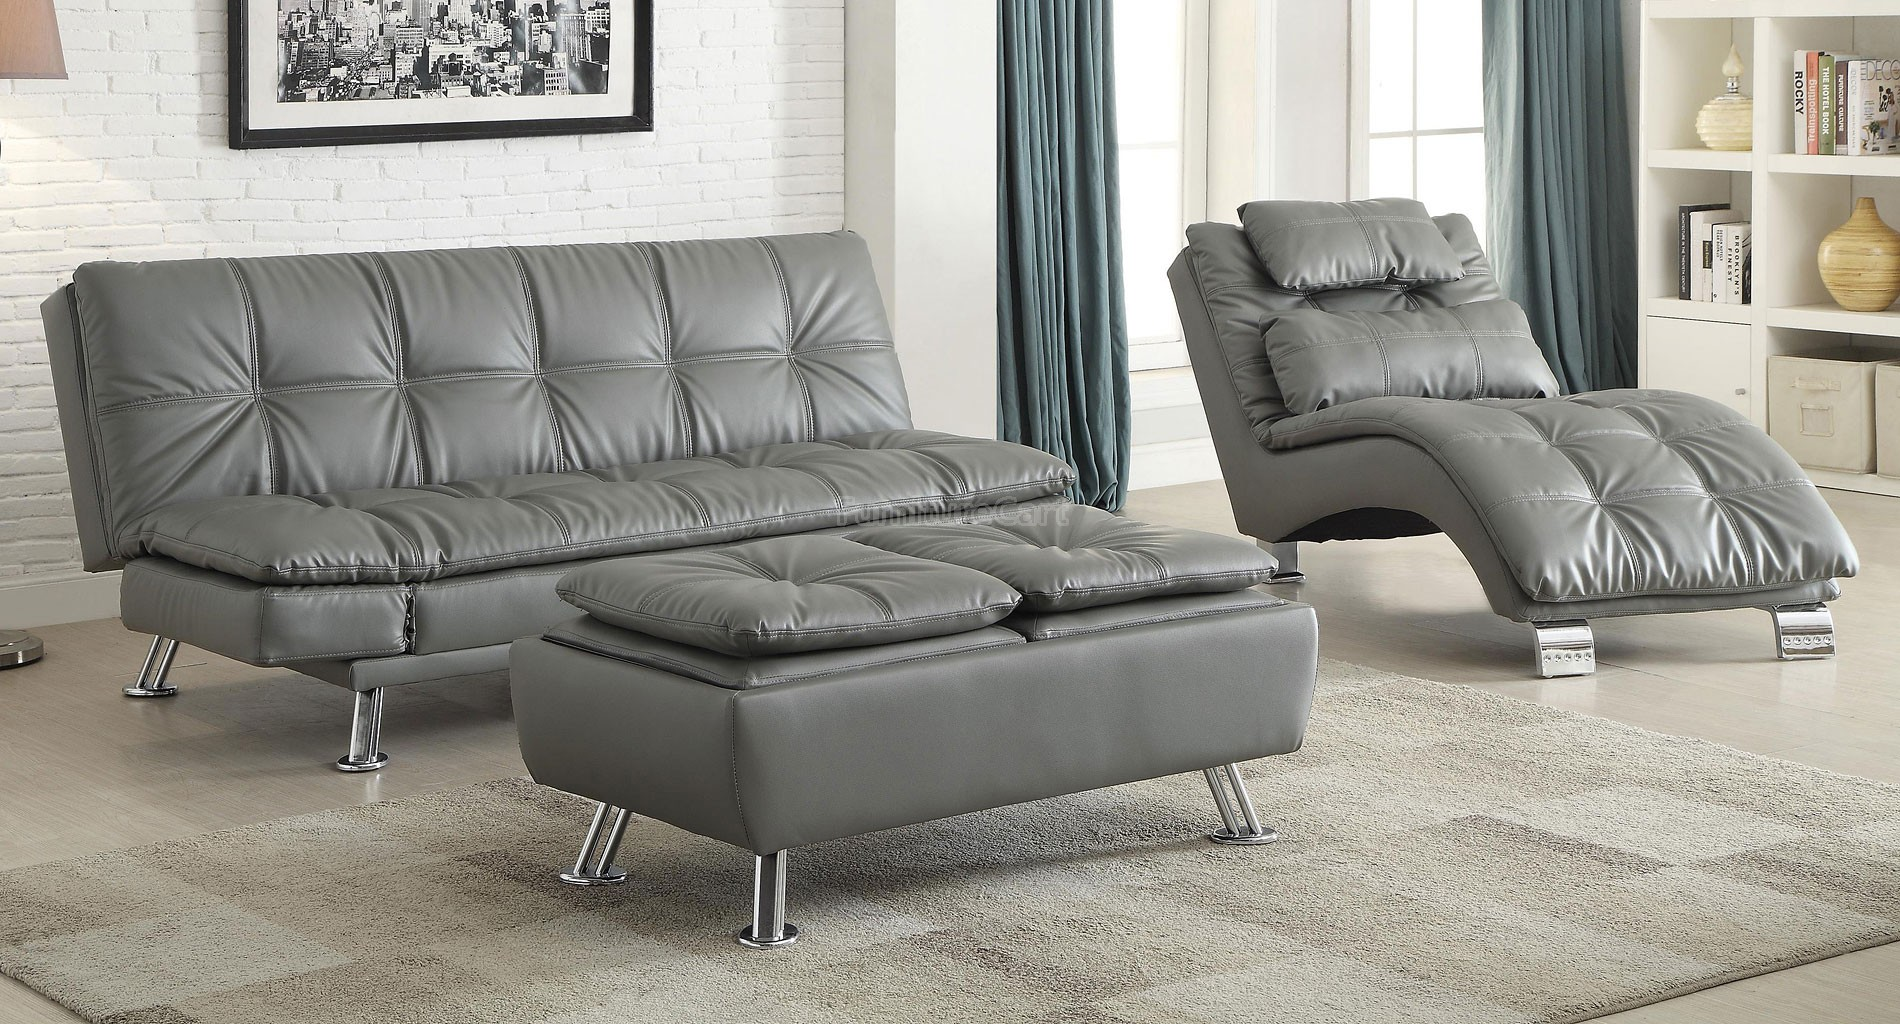 Sofa Bed Grey With Available Matching Chaise And Storage Ottoman Marjen Of Chicago Chicago